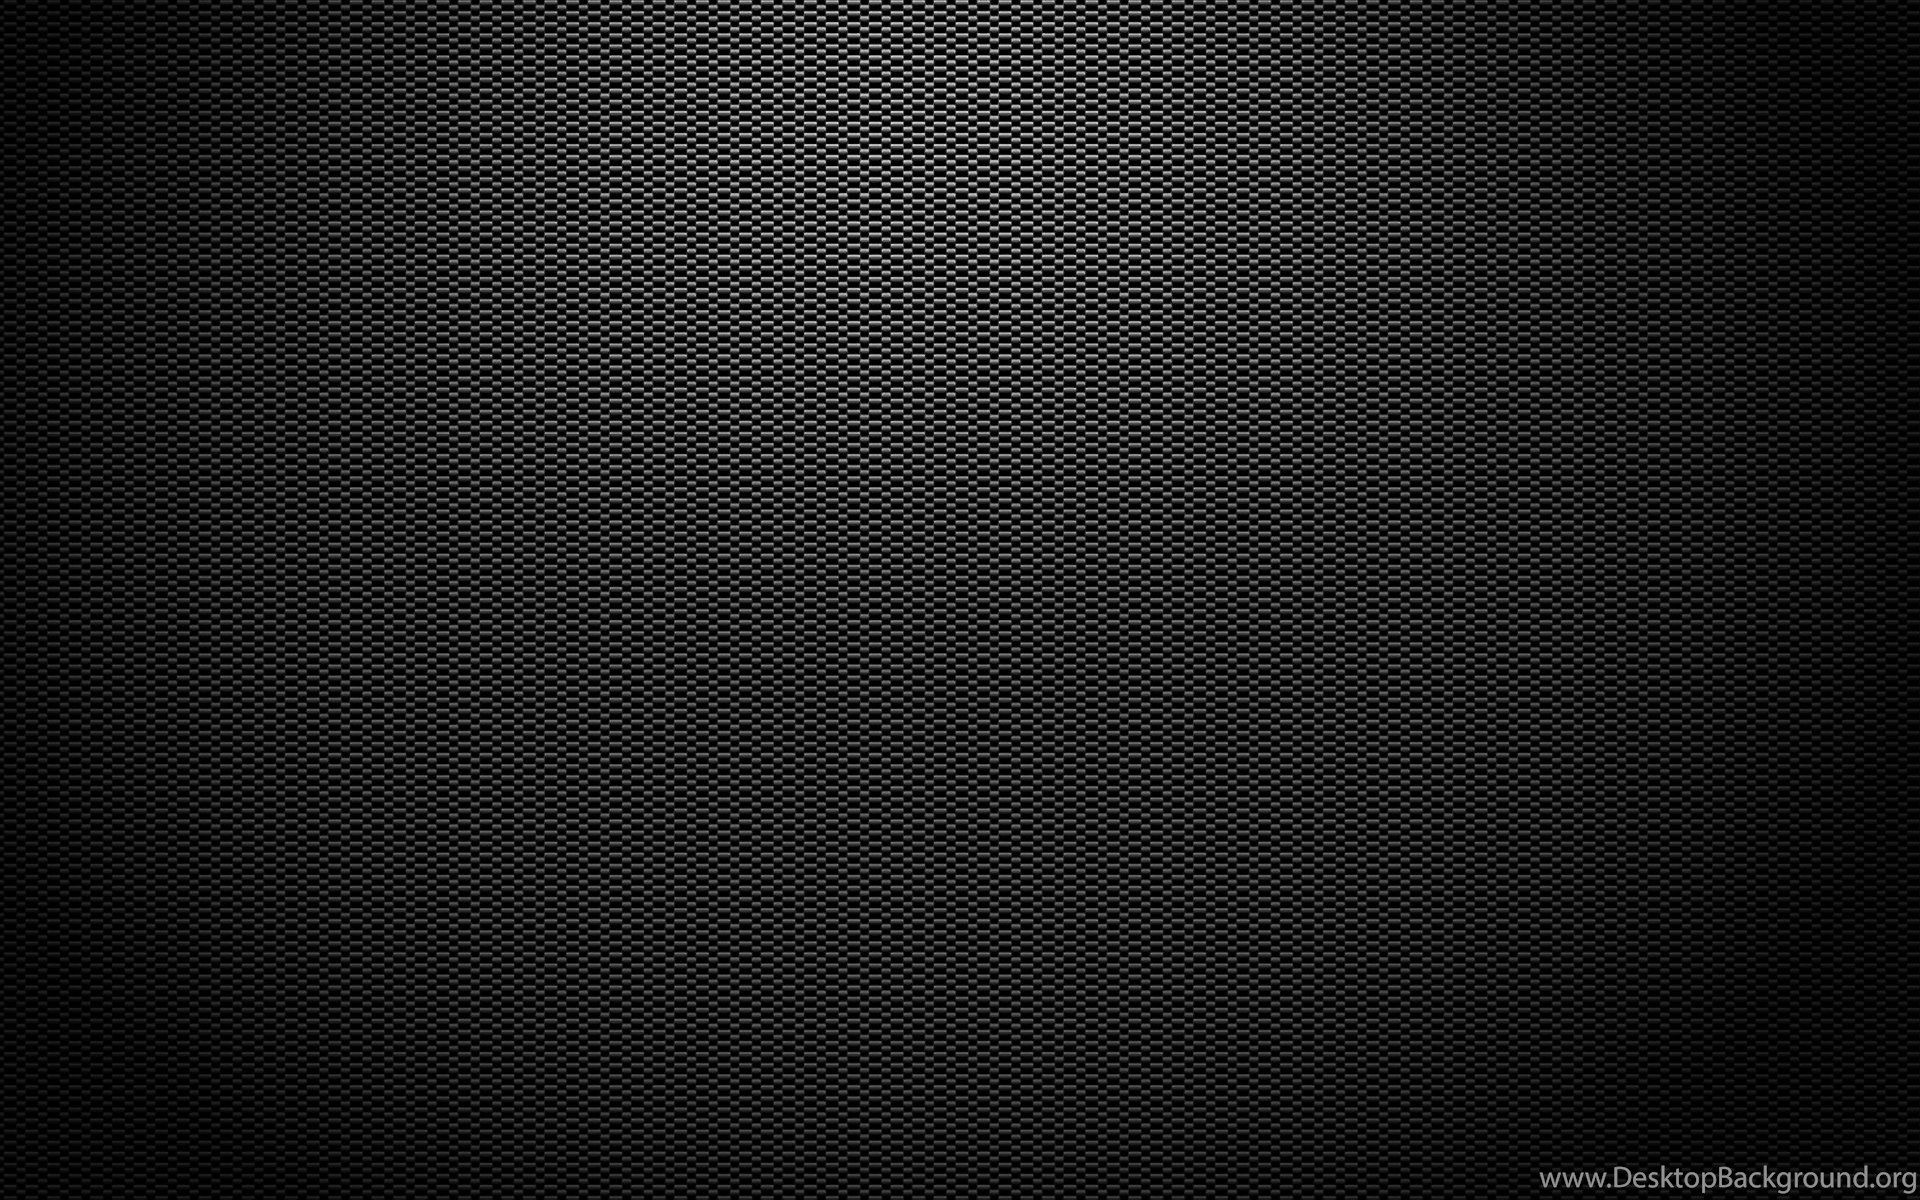 1920x1200 Carbon Fiber HD Wallpapers Desktop Background